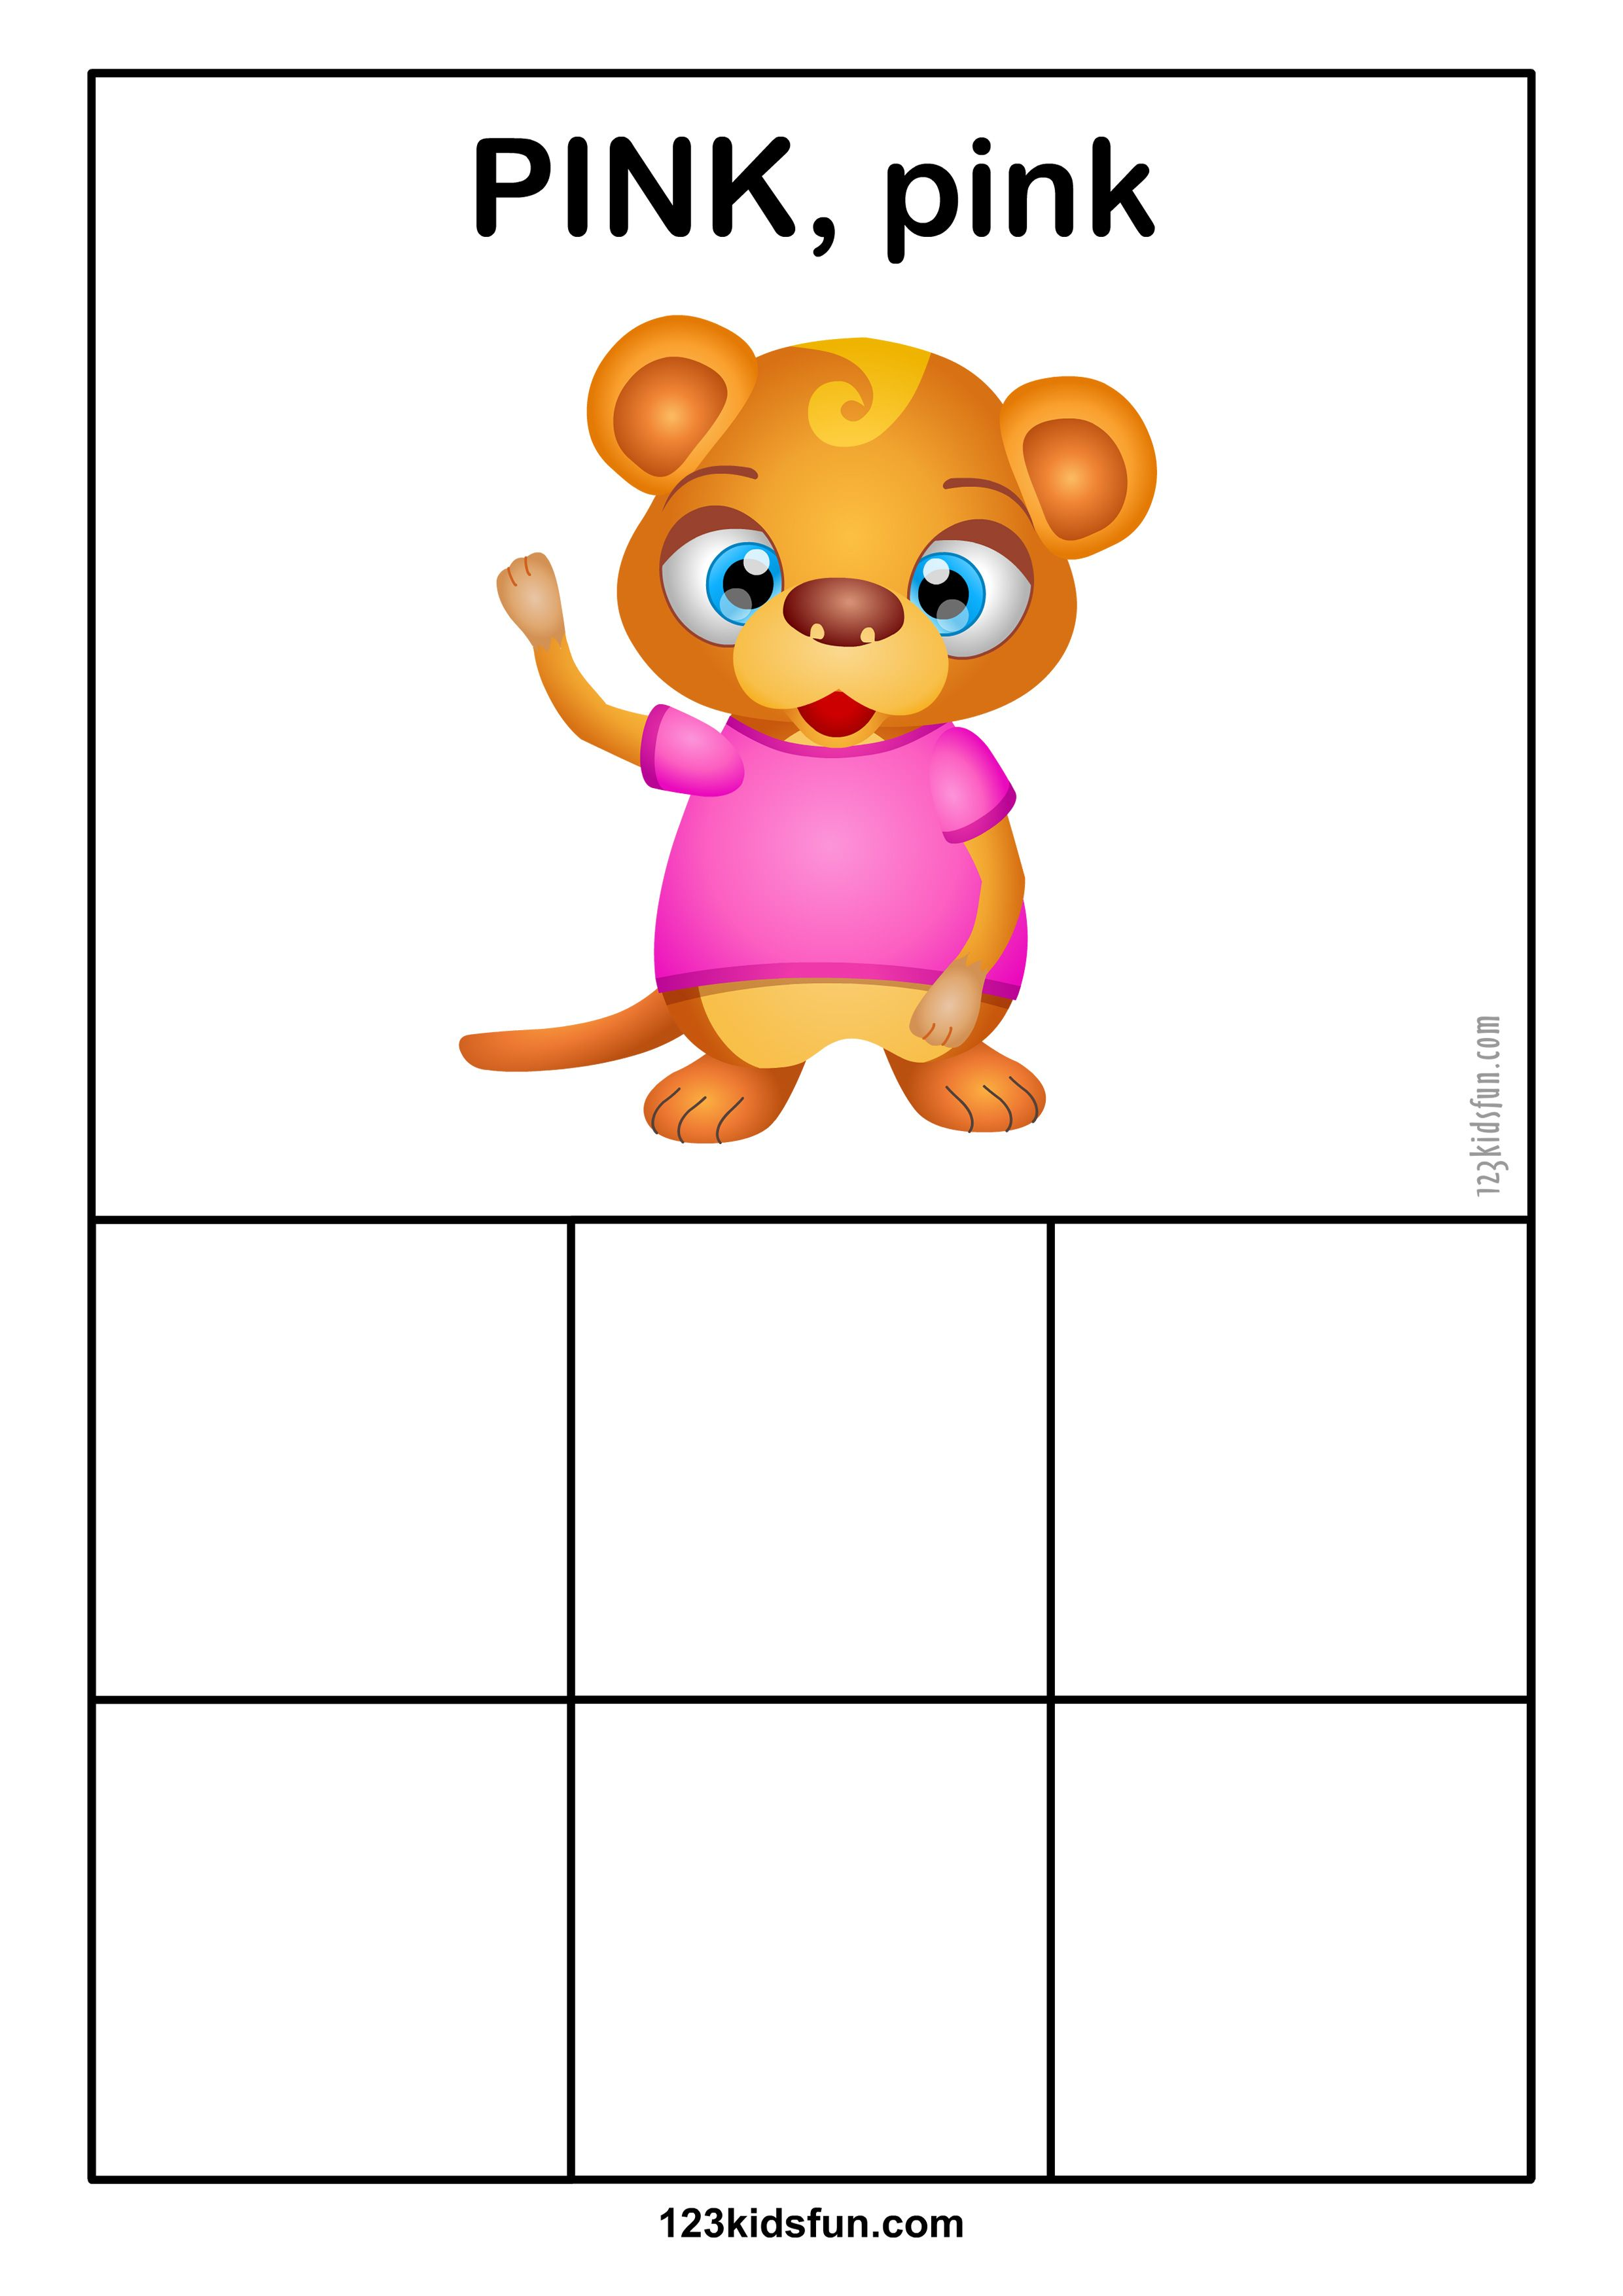 Learning colors for toddlers printables - Free Color Sorting Printable For Toddlers And Preschoolers Perfect For Learning Colors Increasing Vocabulary